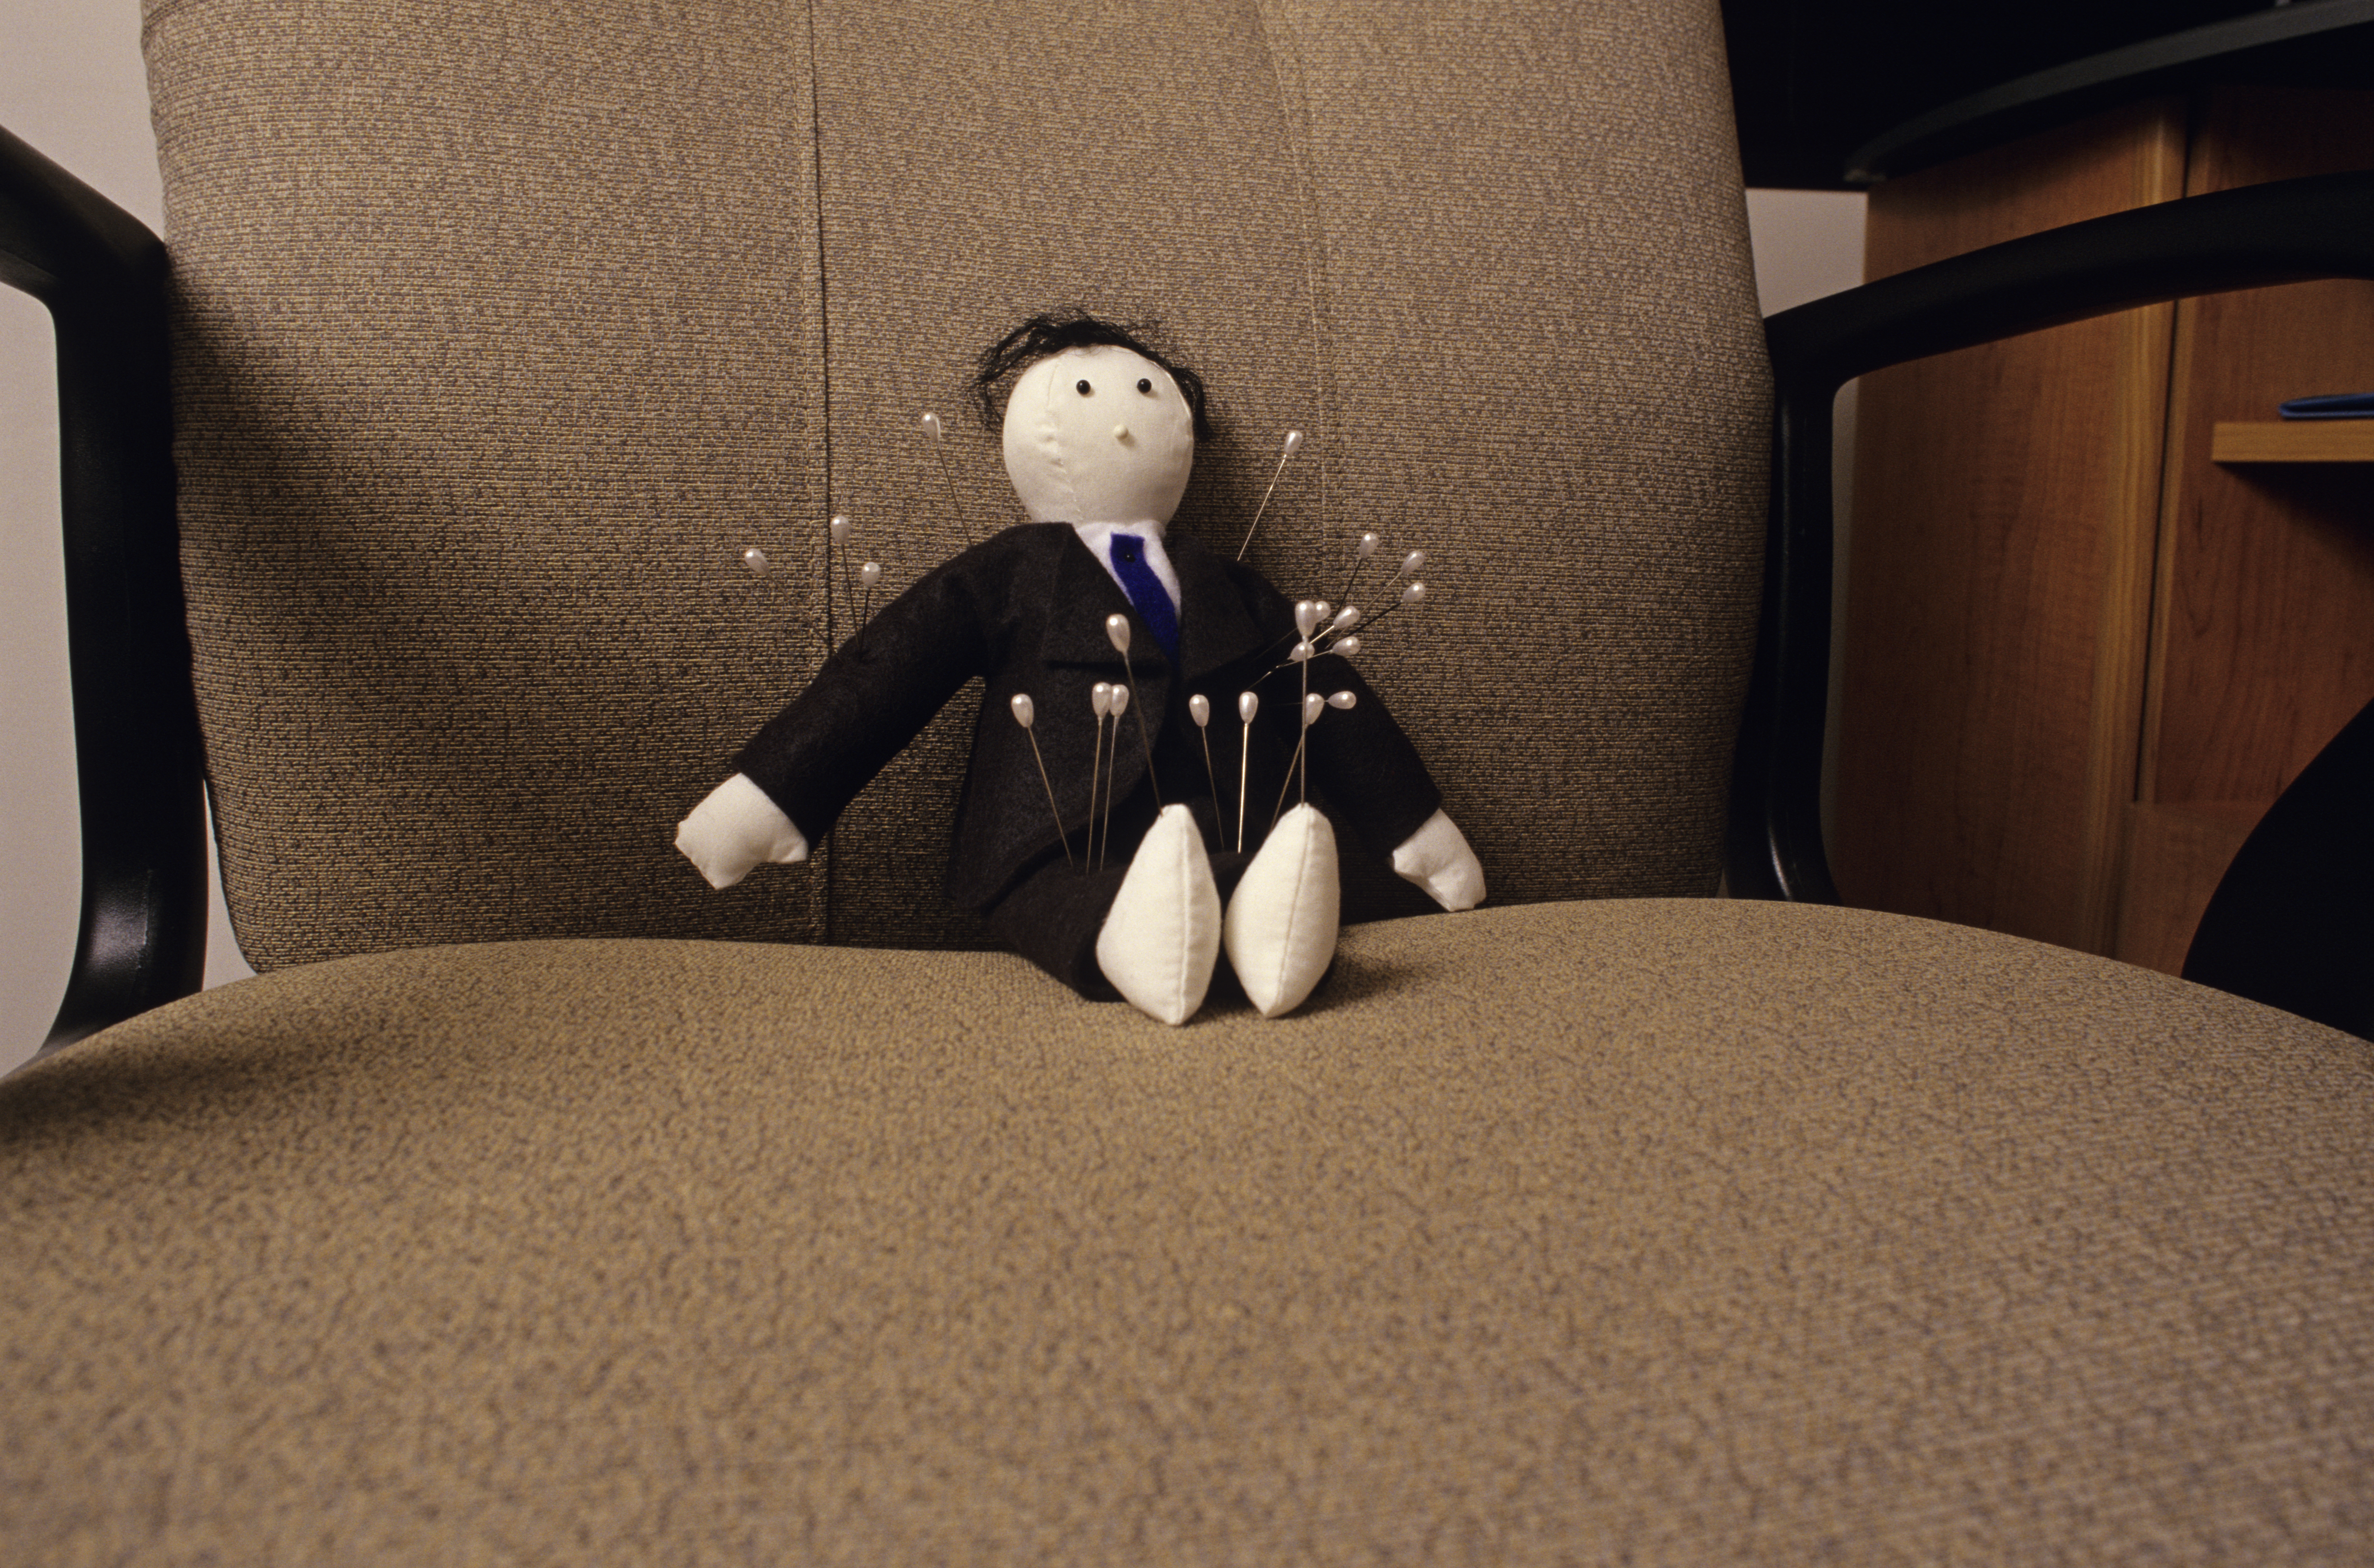 Voodoo doll sitting in chair in office